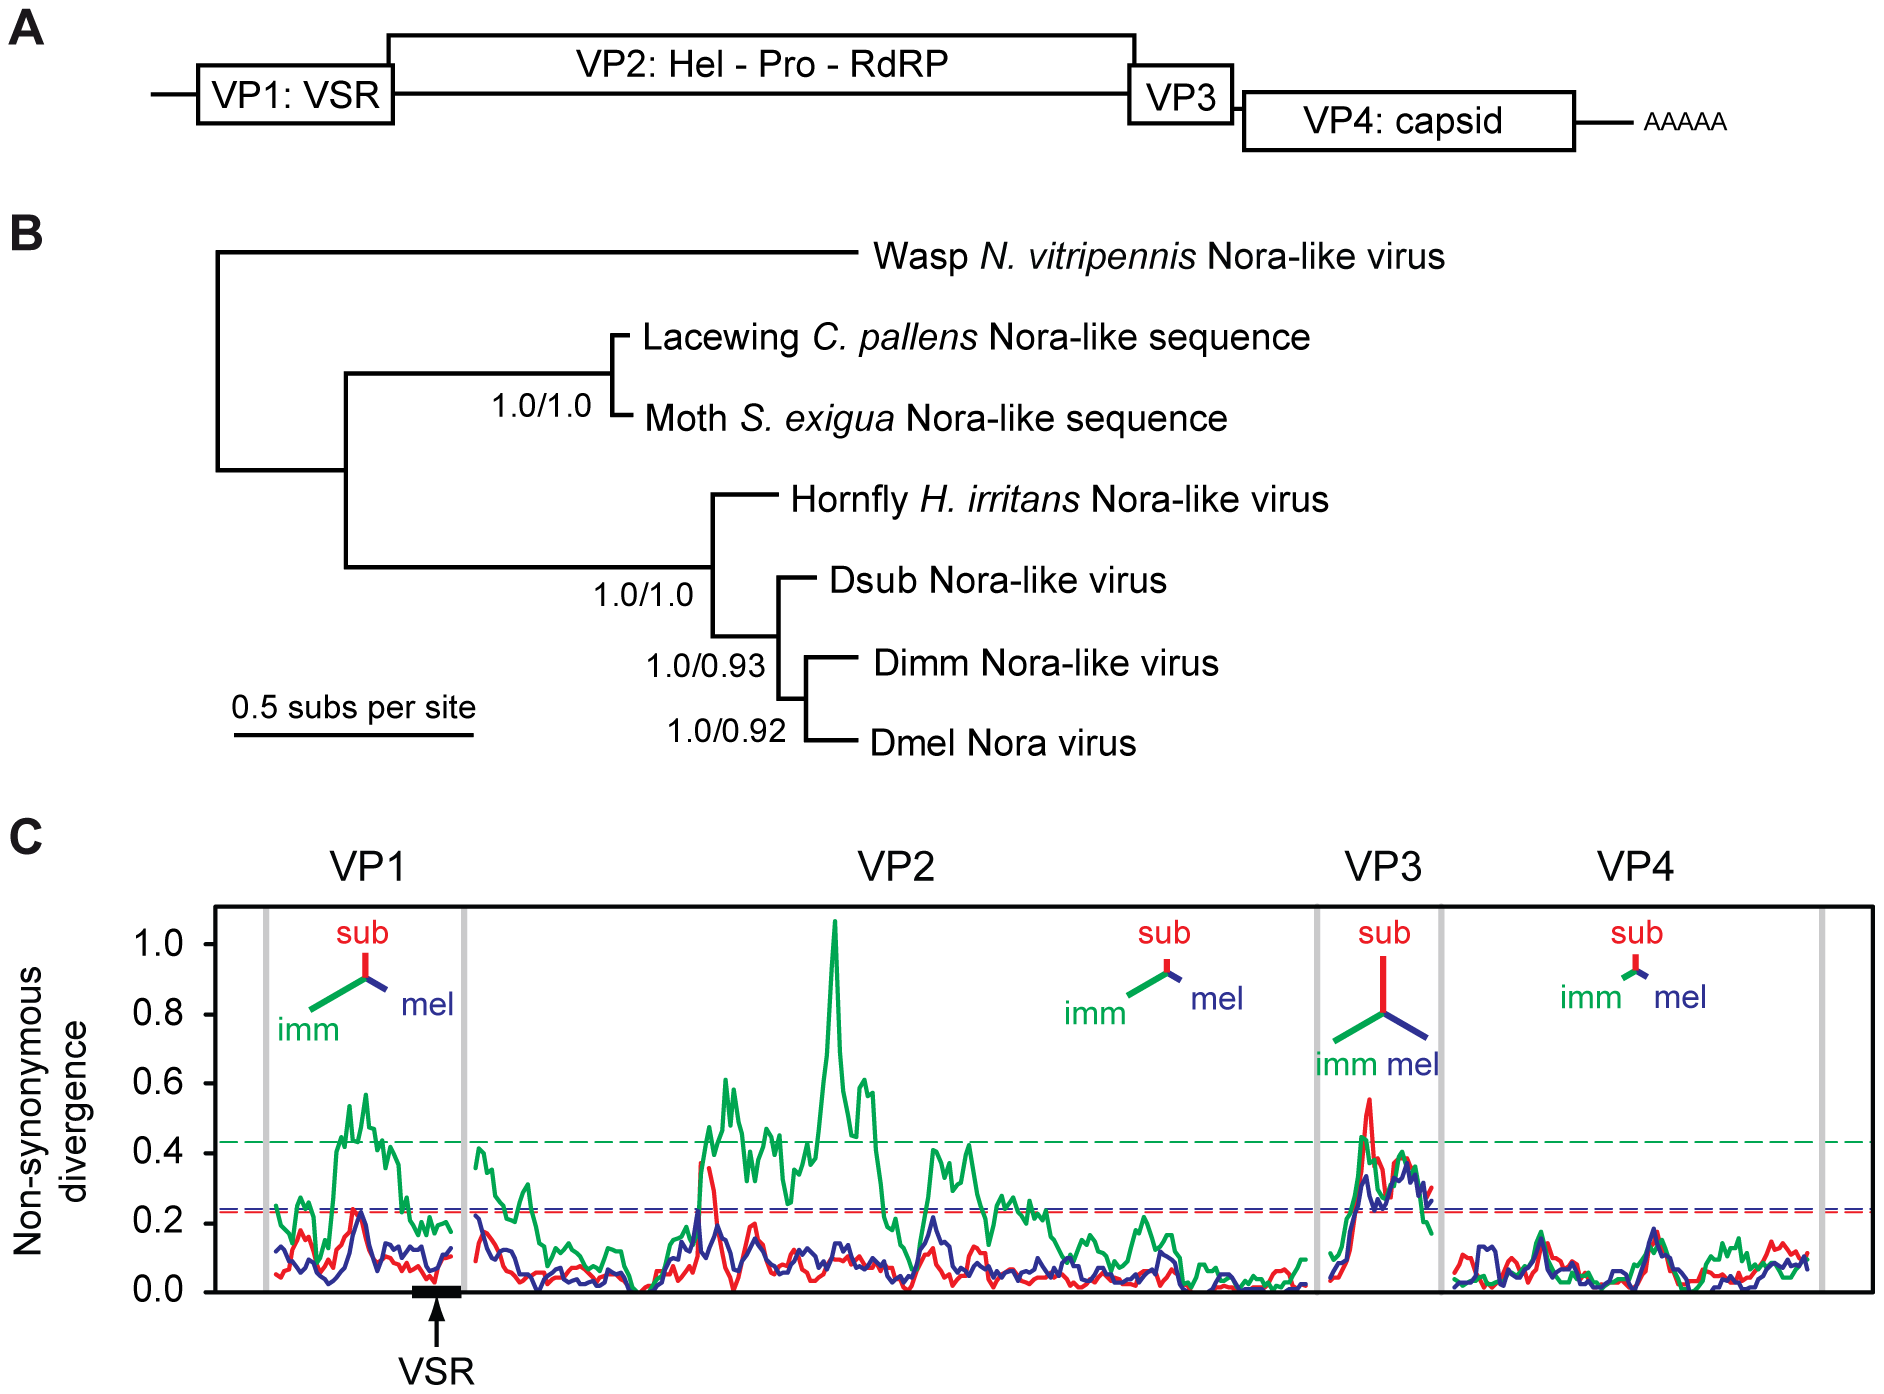 Phylogenetic analysis and non-synonymous divergence between Nora viruses.